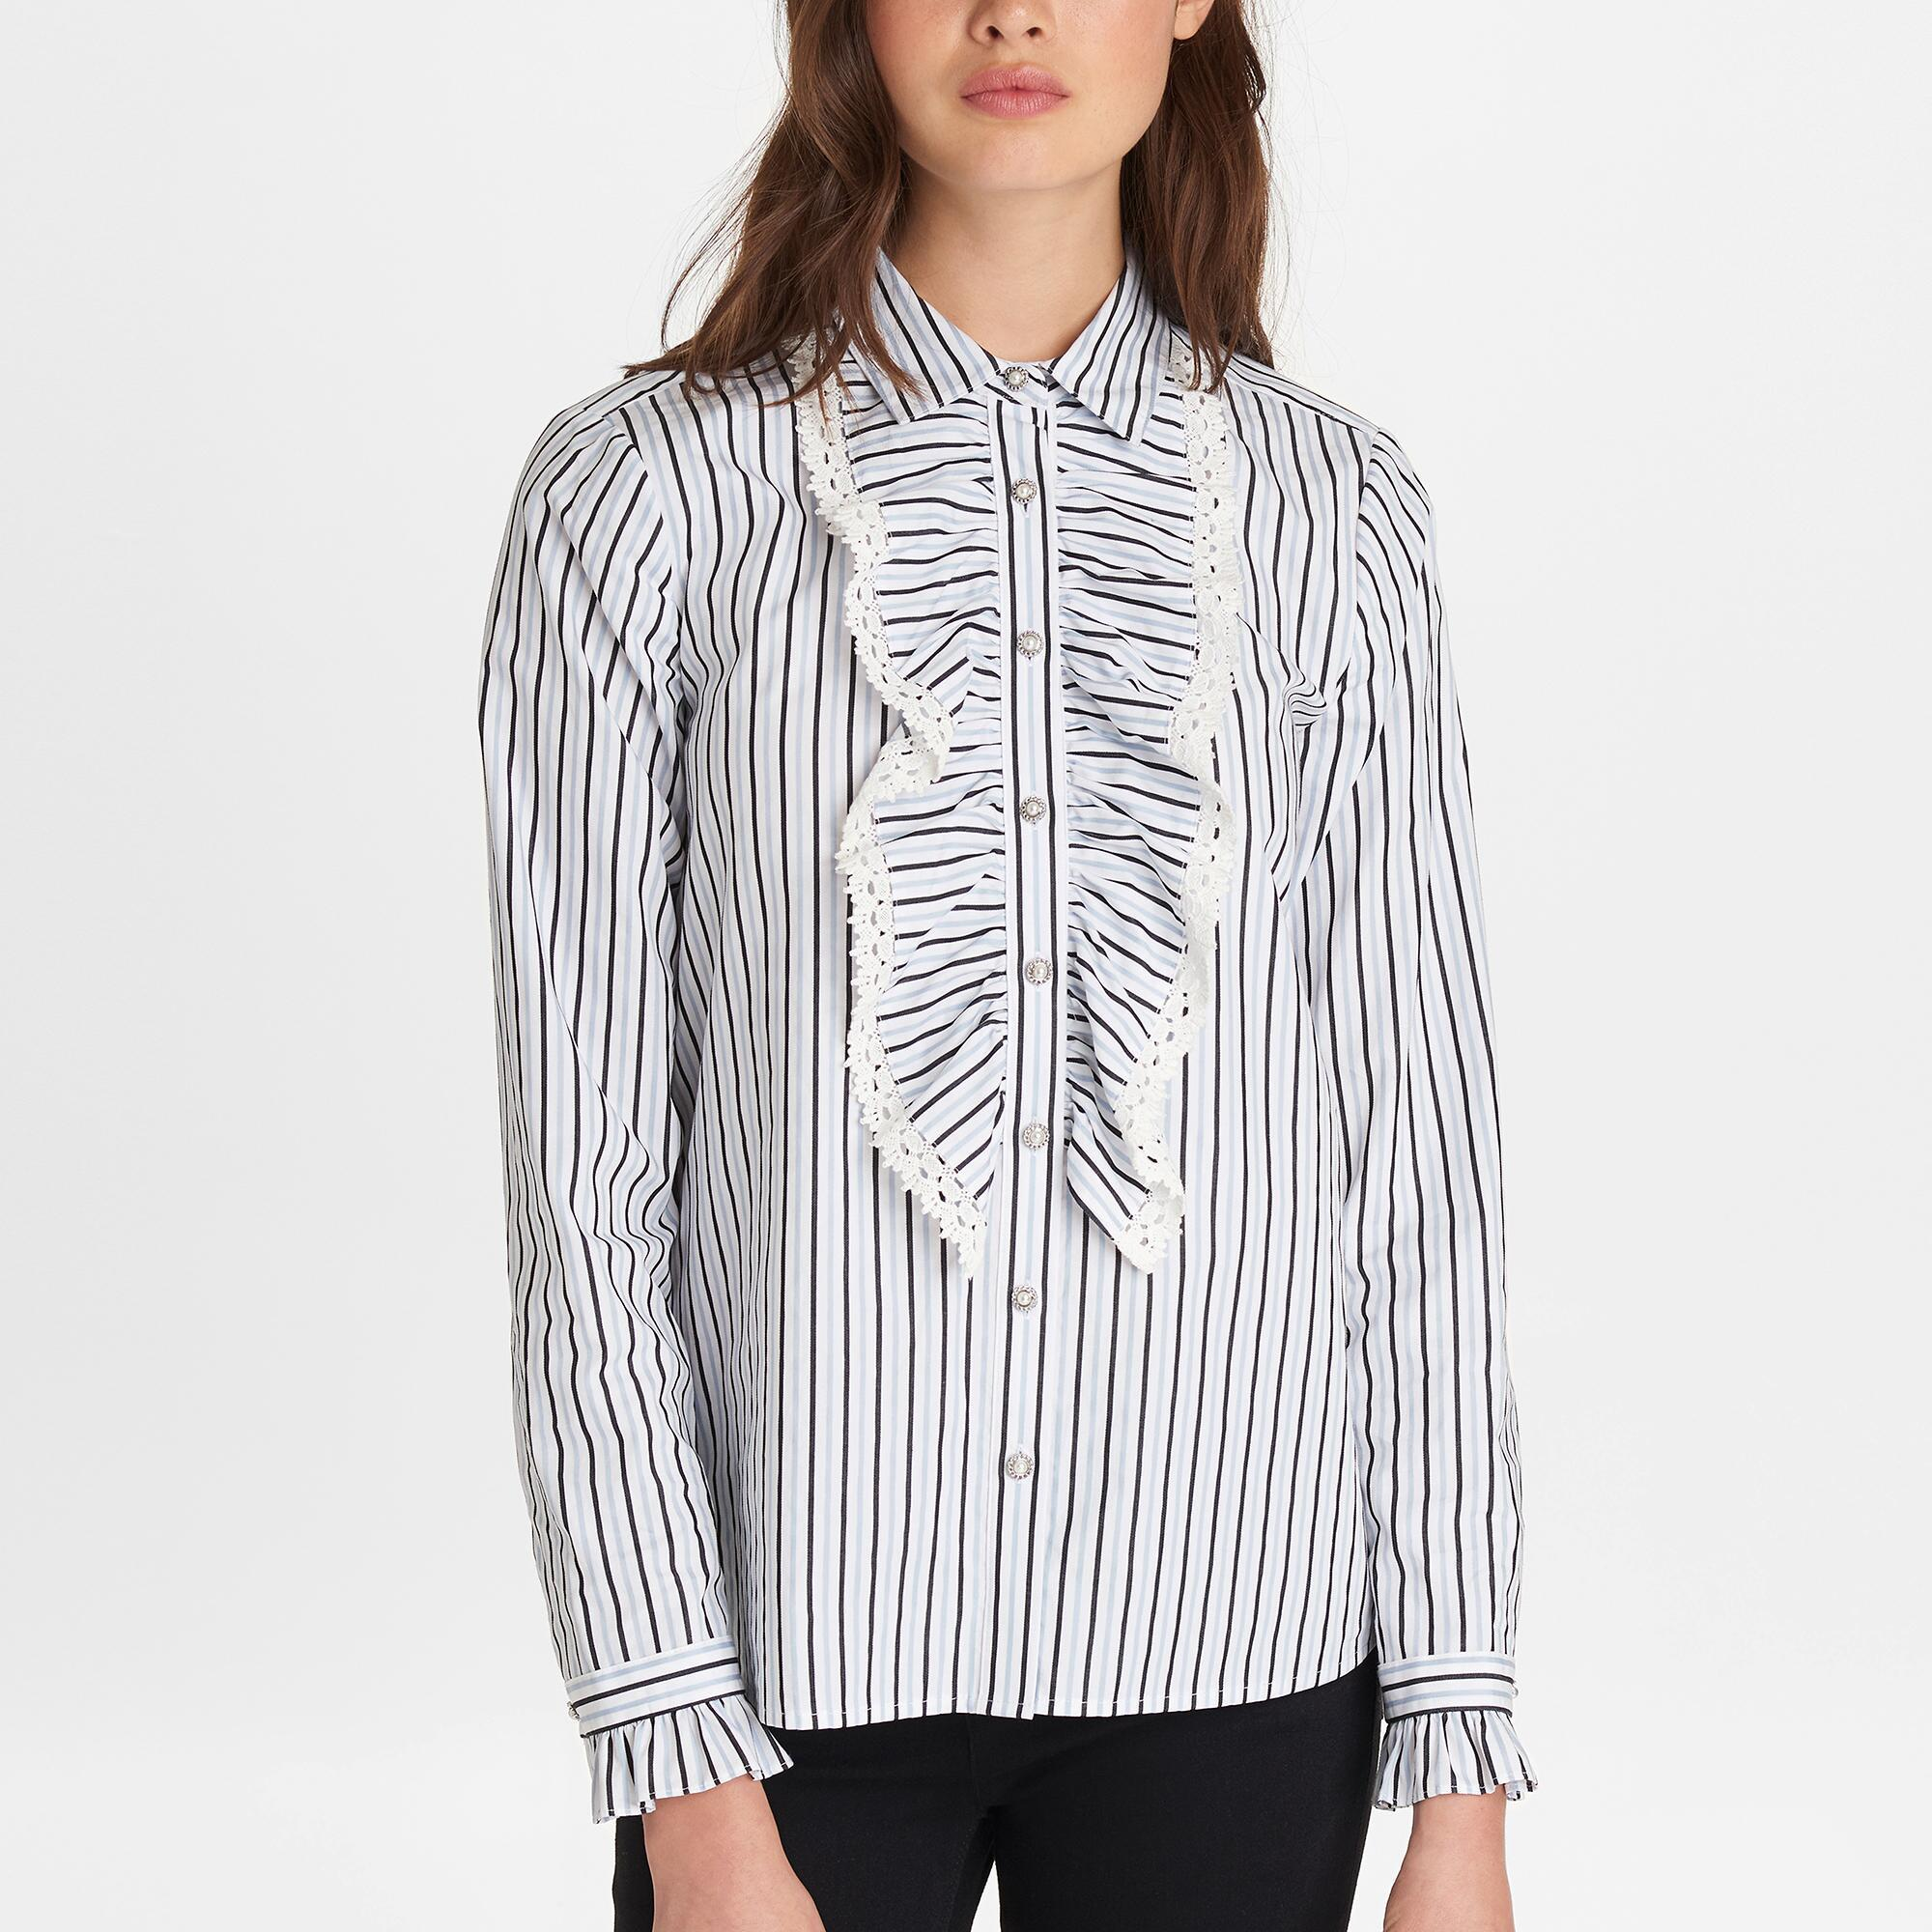 6ee5b16fdd1e3a Karl Lagerfeld - Multicolor Striped Blouse With Ruffle Front - Lyst. View  fullscreen